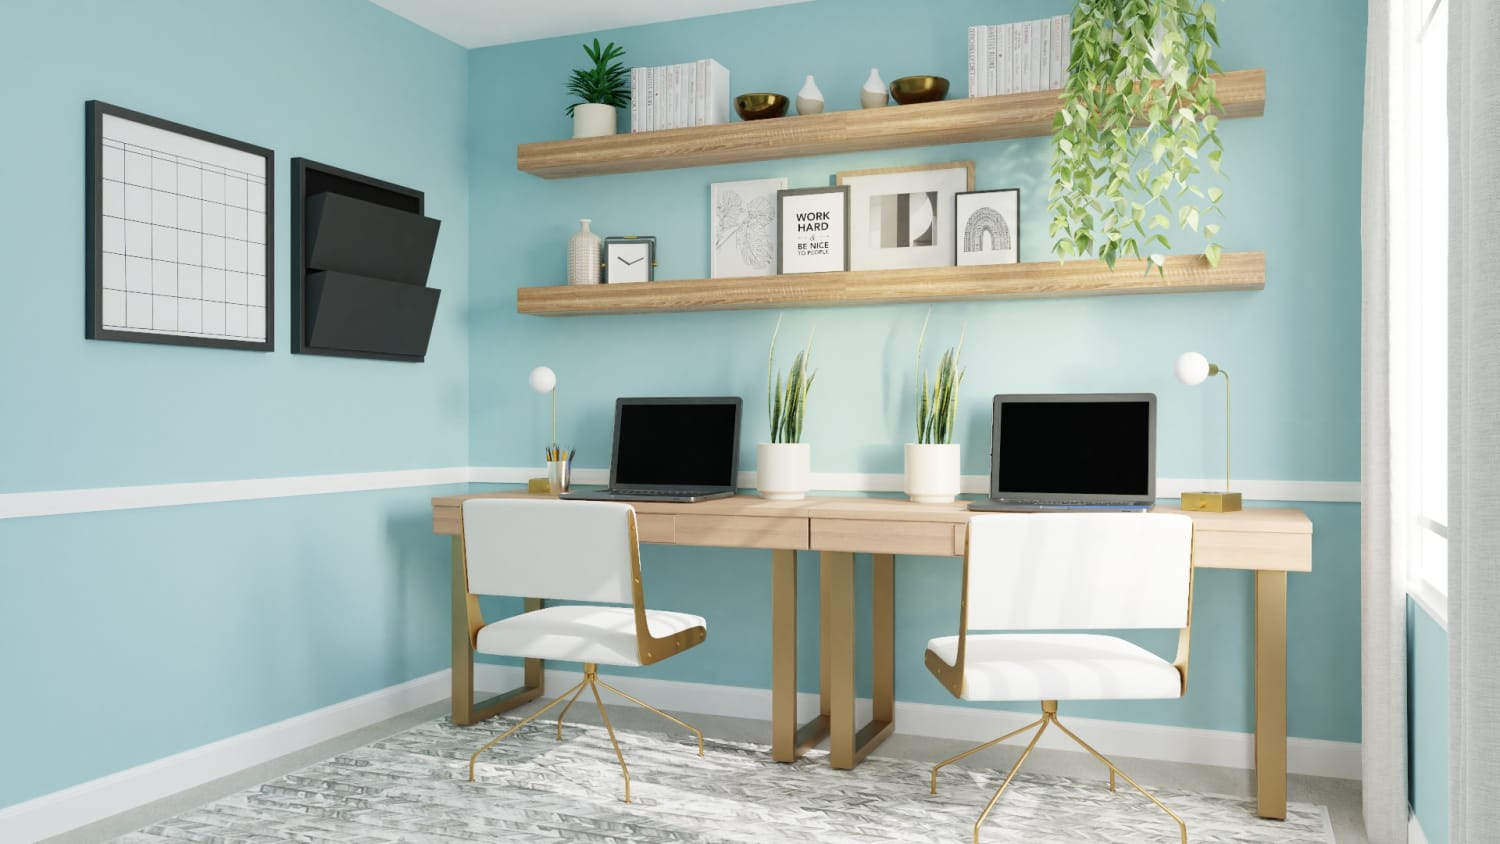 Sea of Aqua:  Mid-Century Boho Home Office Design By Spacejoy